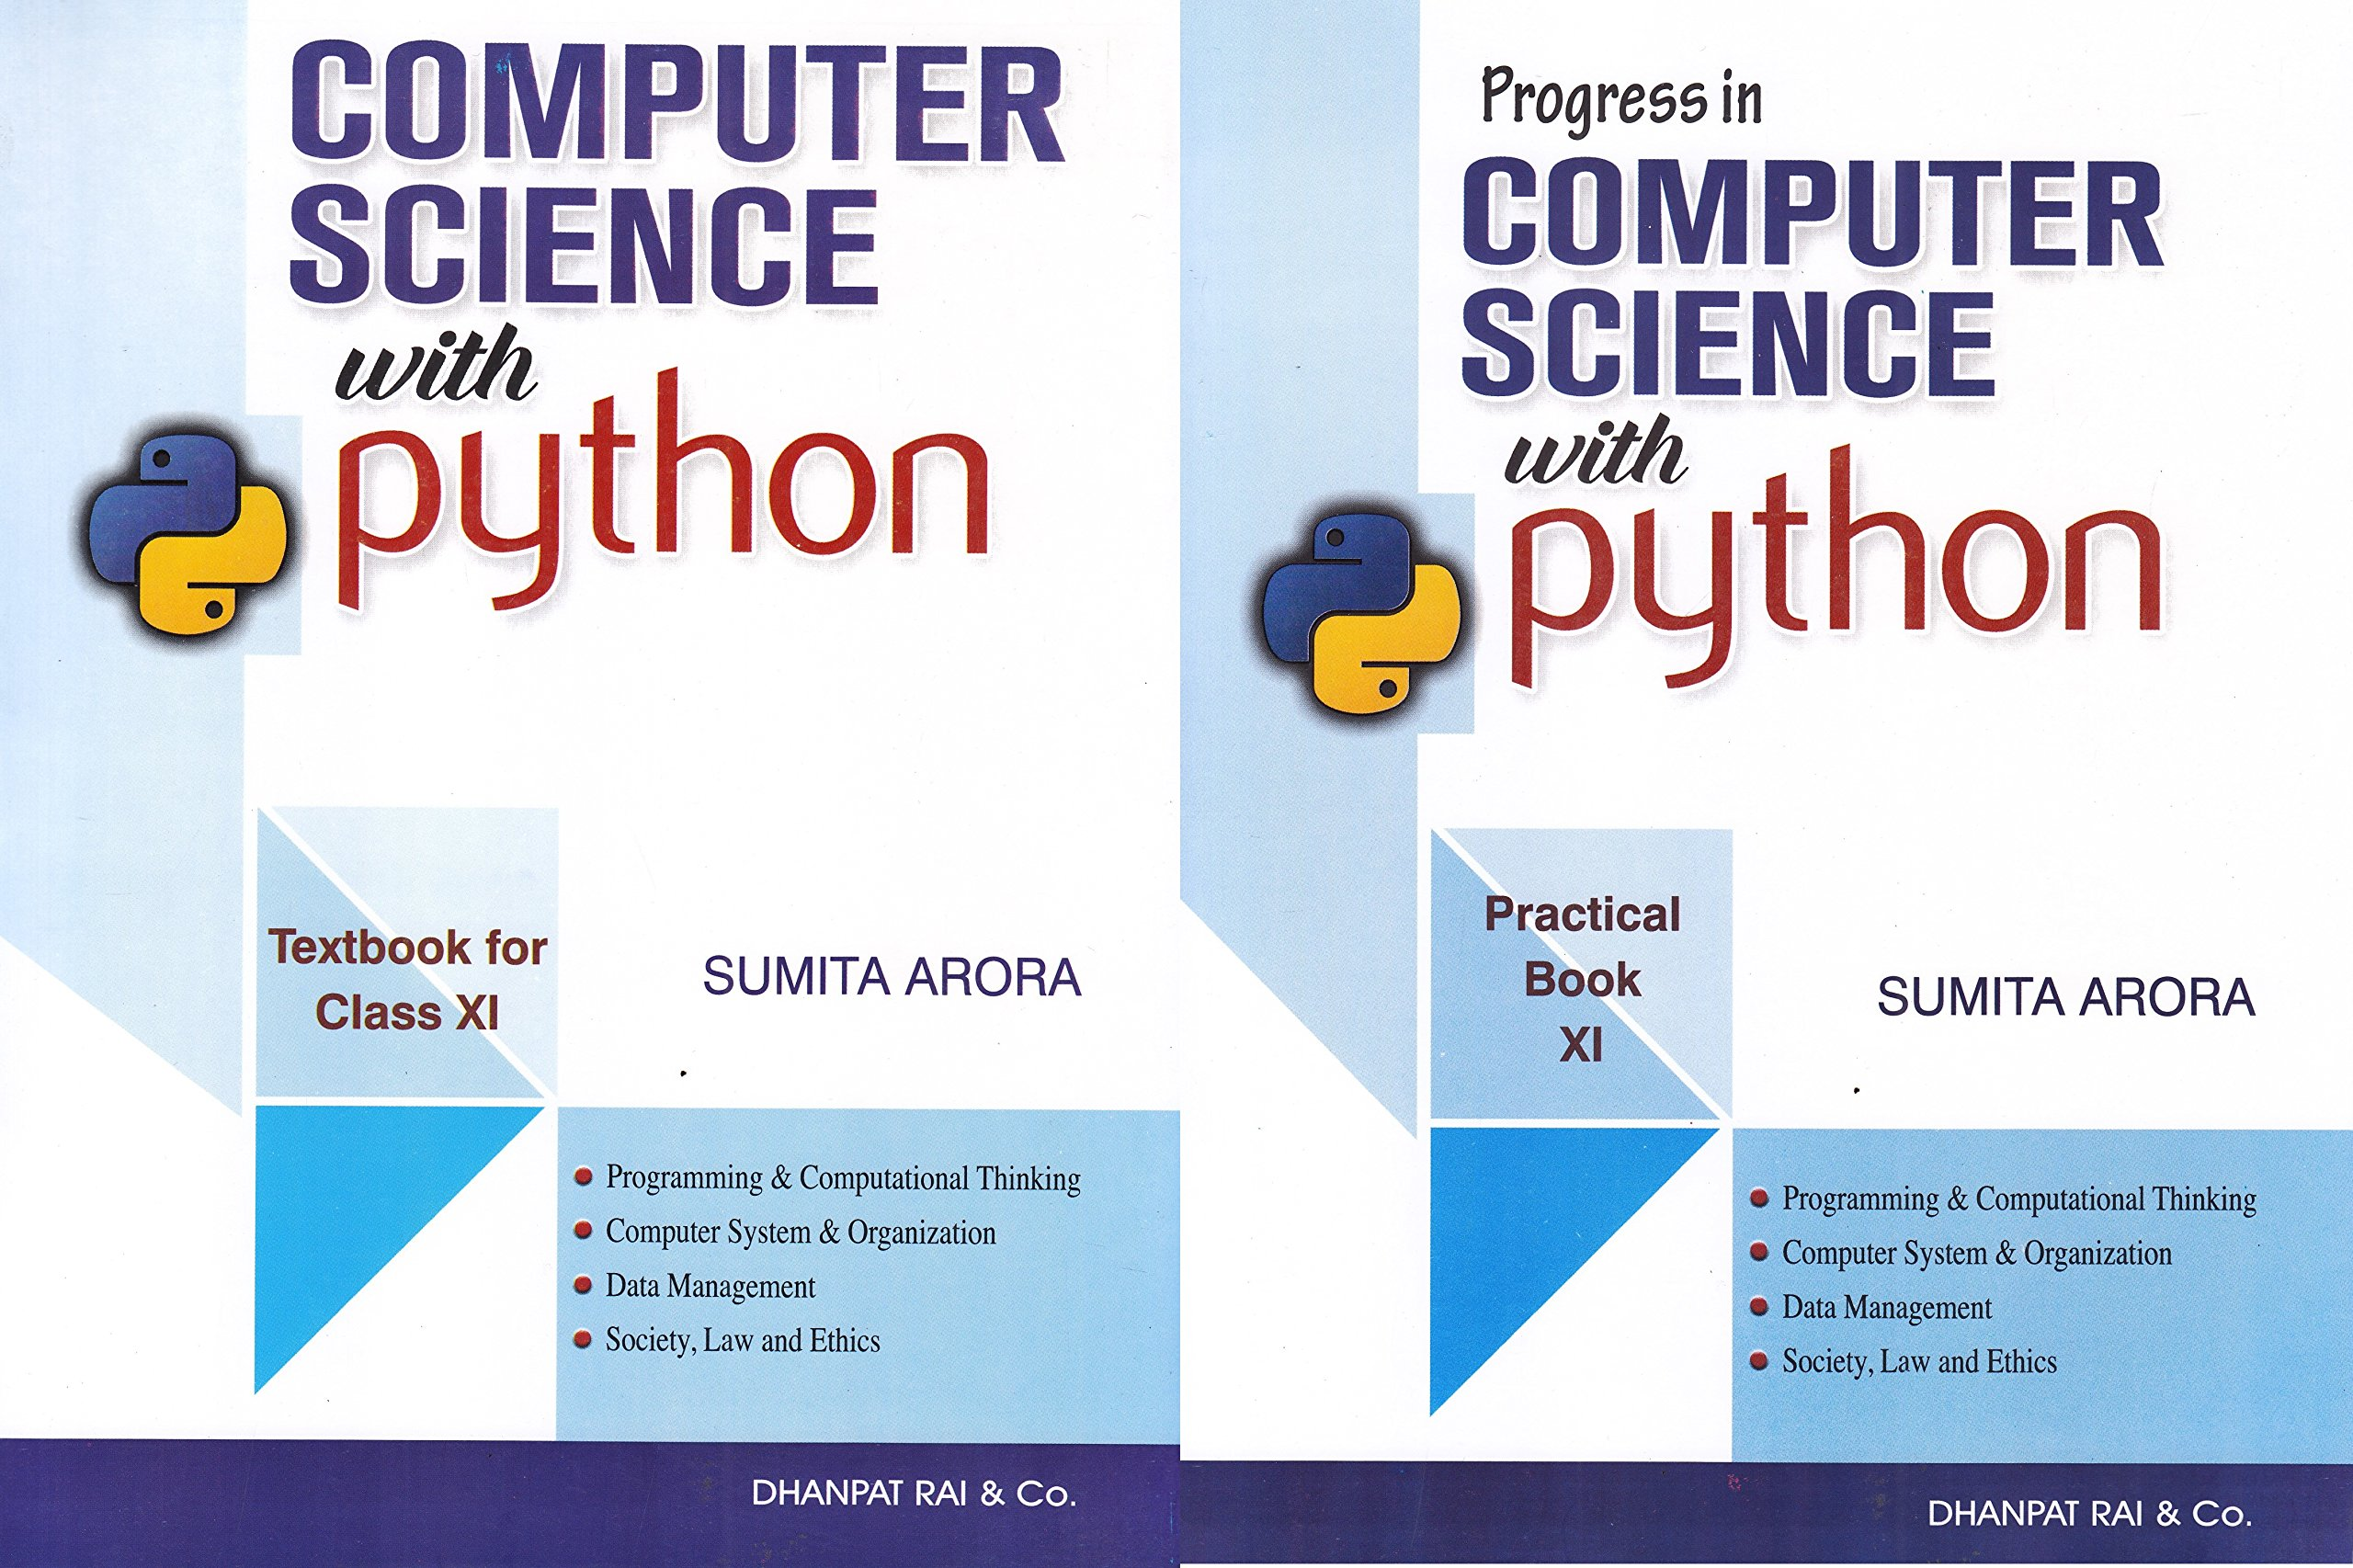 Computer Science with Python by Sumita Arora Class XI